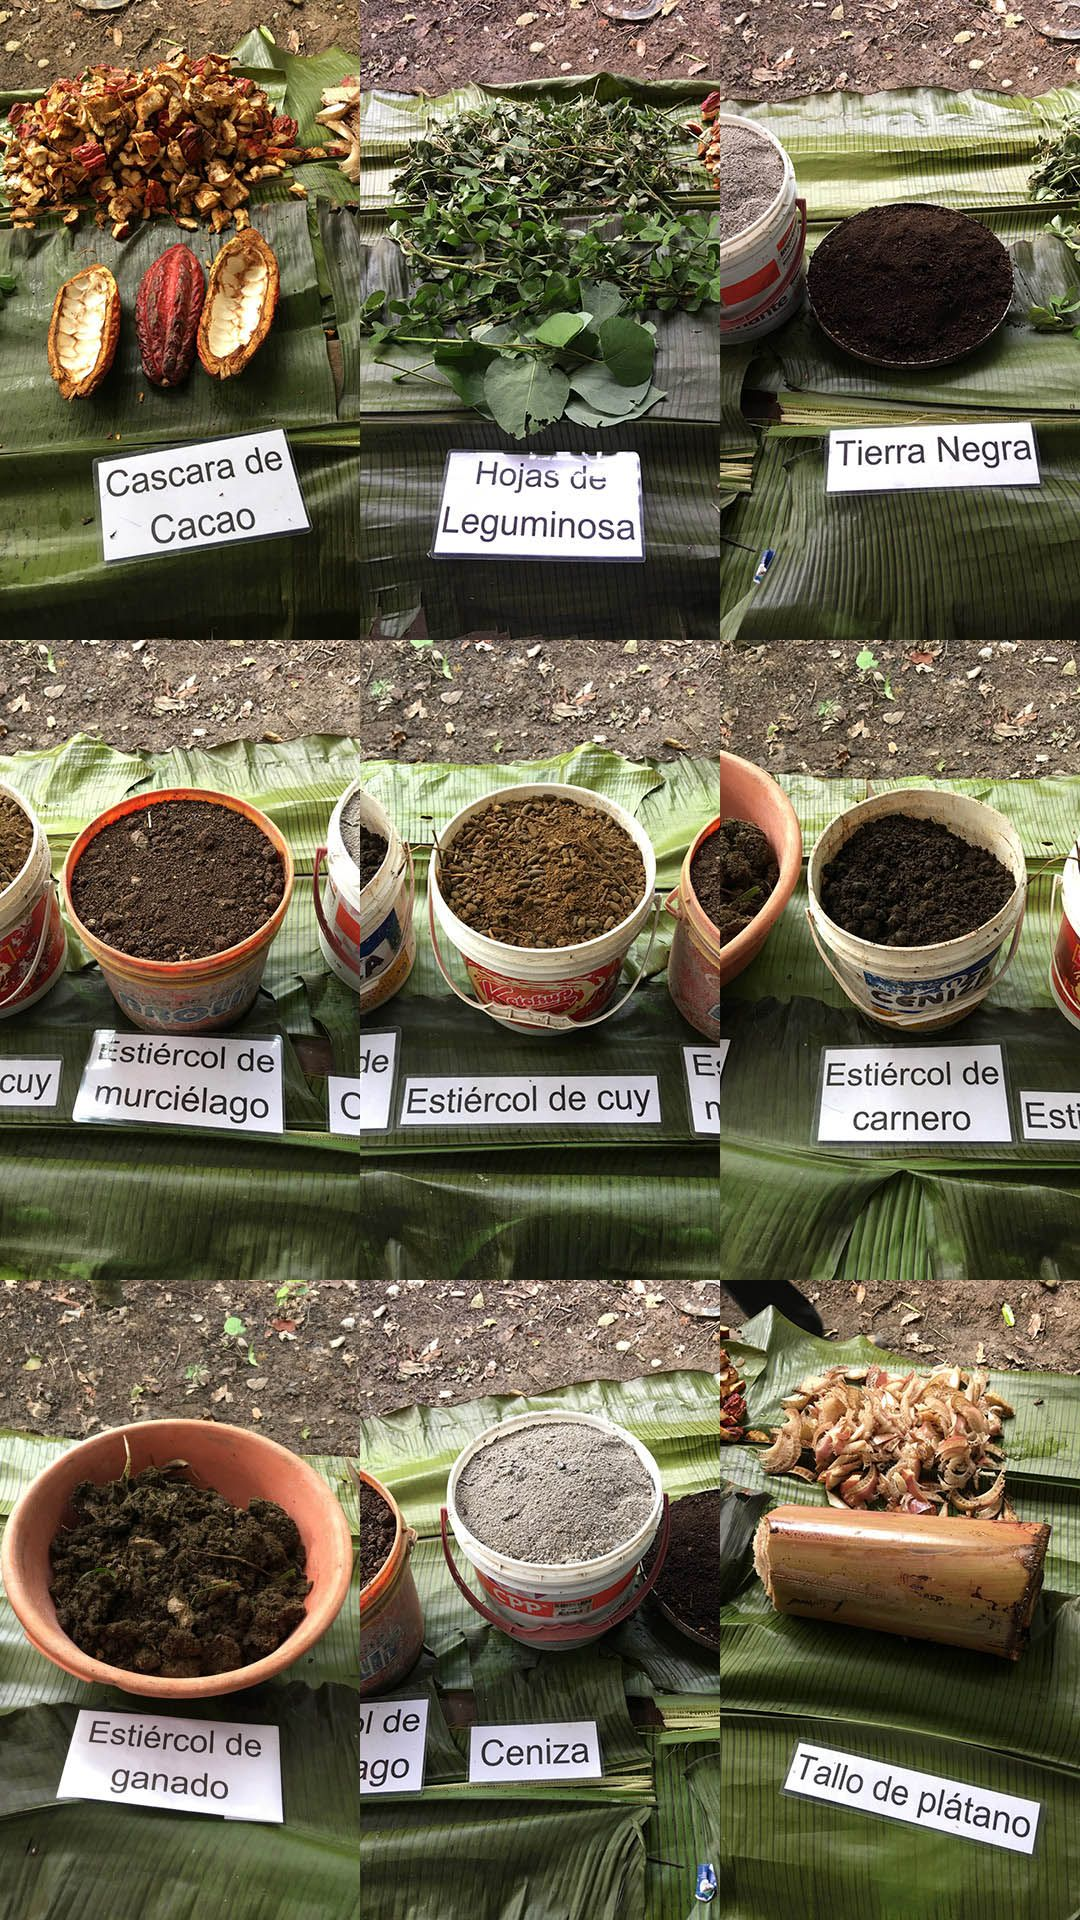 """9 of the 10 components of the organic composted fertilizer used in the high-density, high-intensity, """"lollipop"""" planting scheme at the Empresa Agroforestal y Ambiental Alborada in Tingo Maria, Peru. The 10th component is cacao juice."""